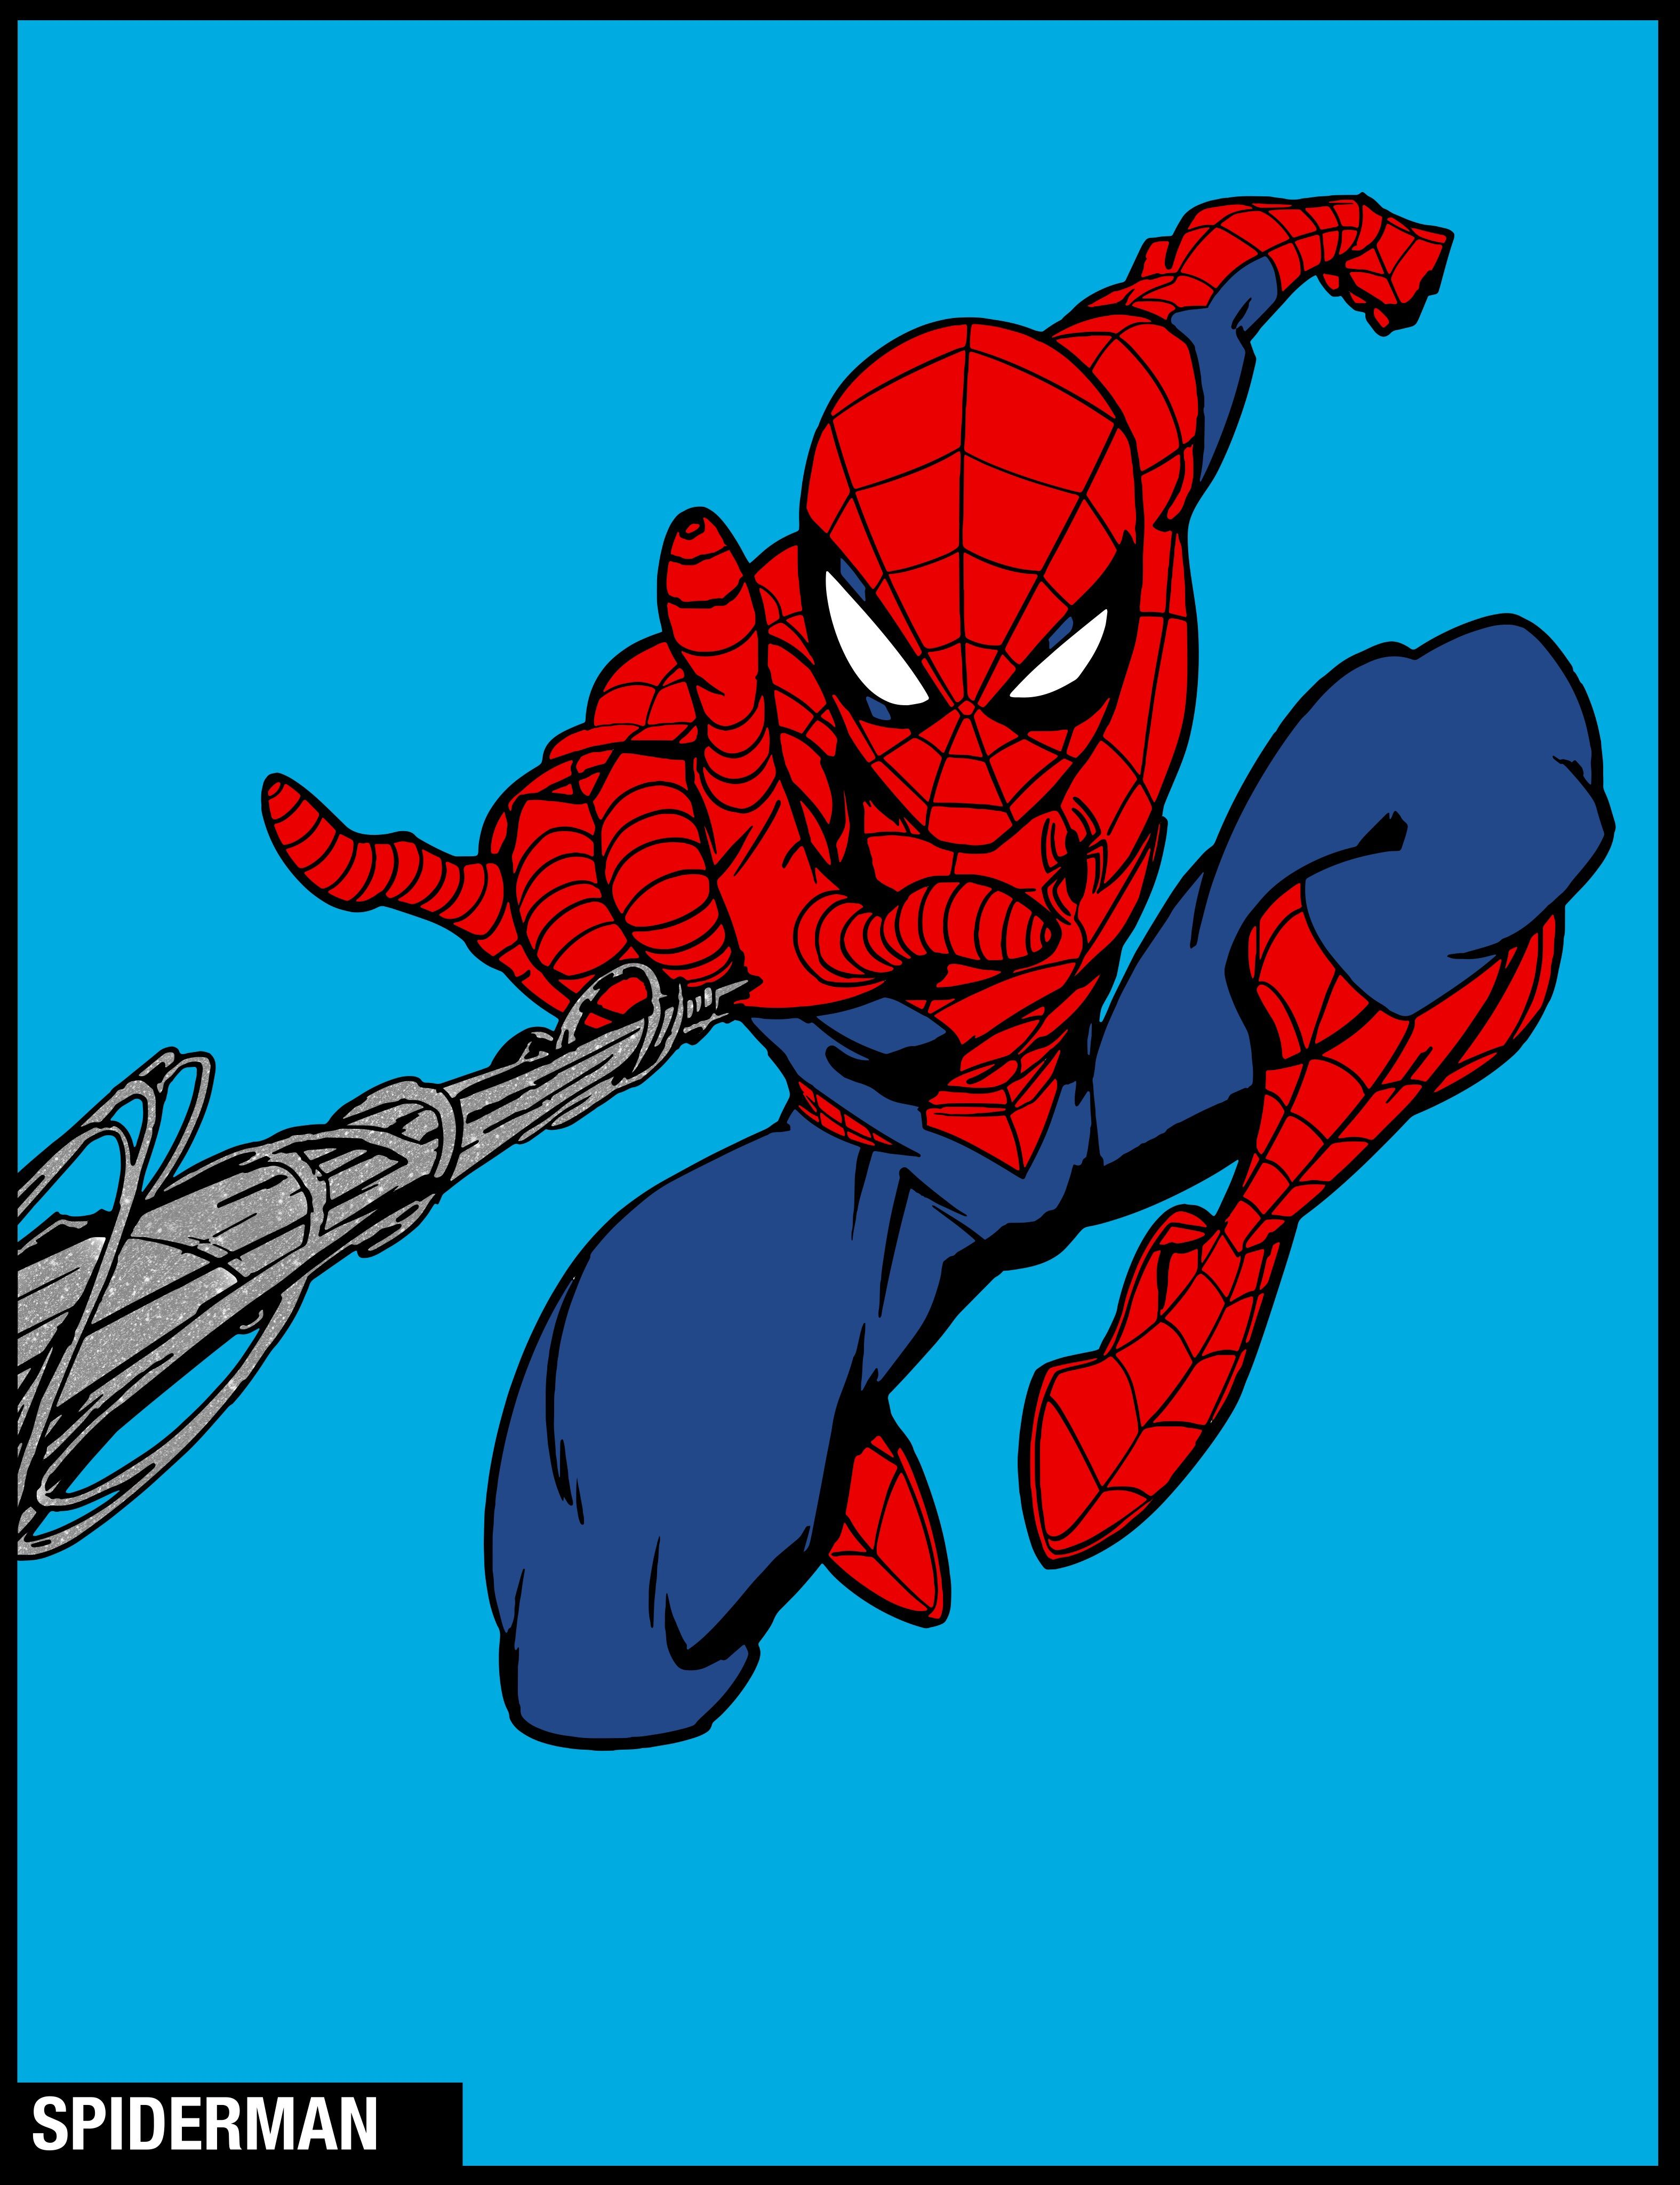 Made In Marvel Color Your Own Marvelcoloring Spiderman Art Spiderman Tattoo Spiderman